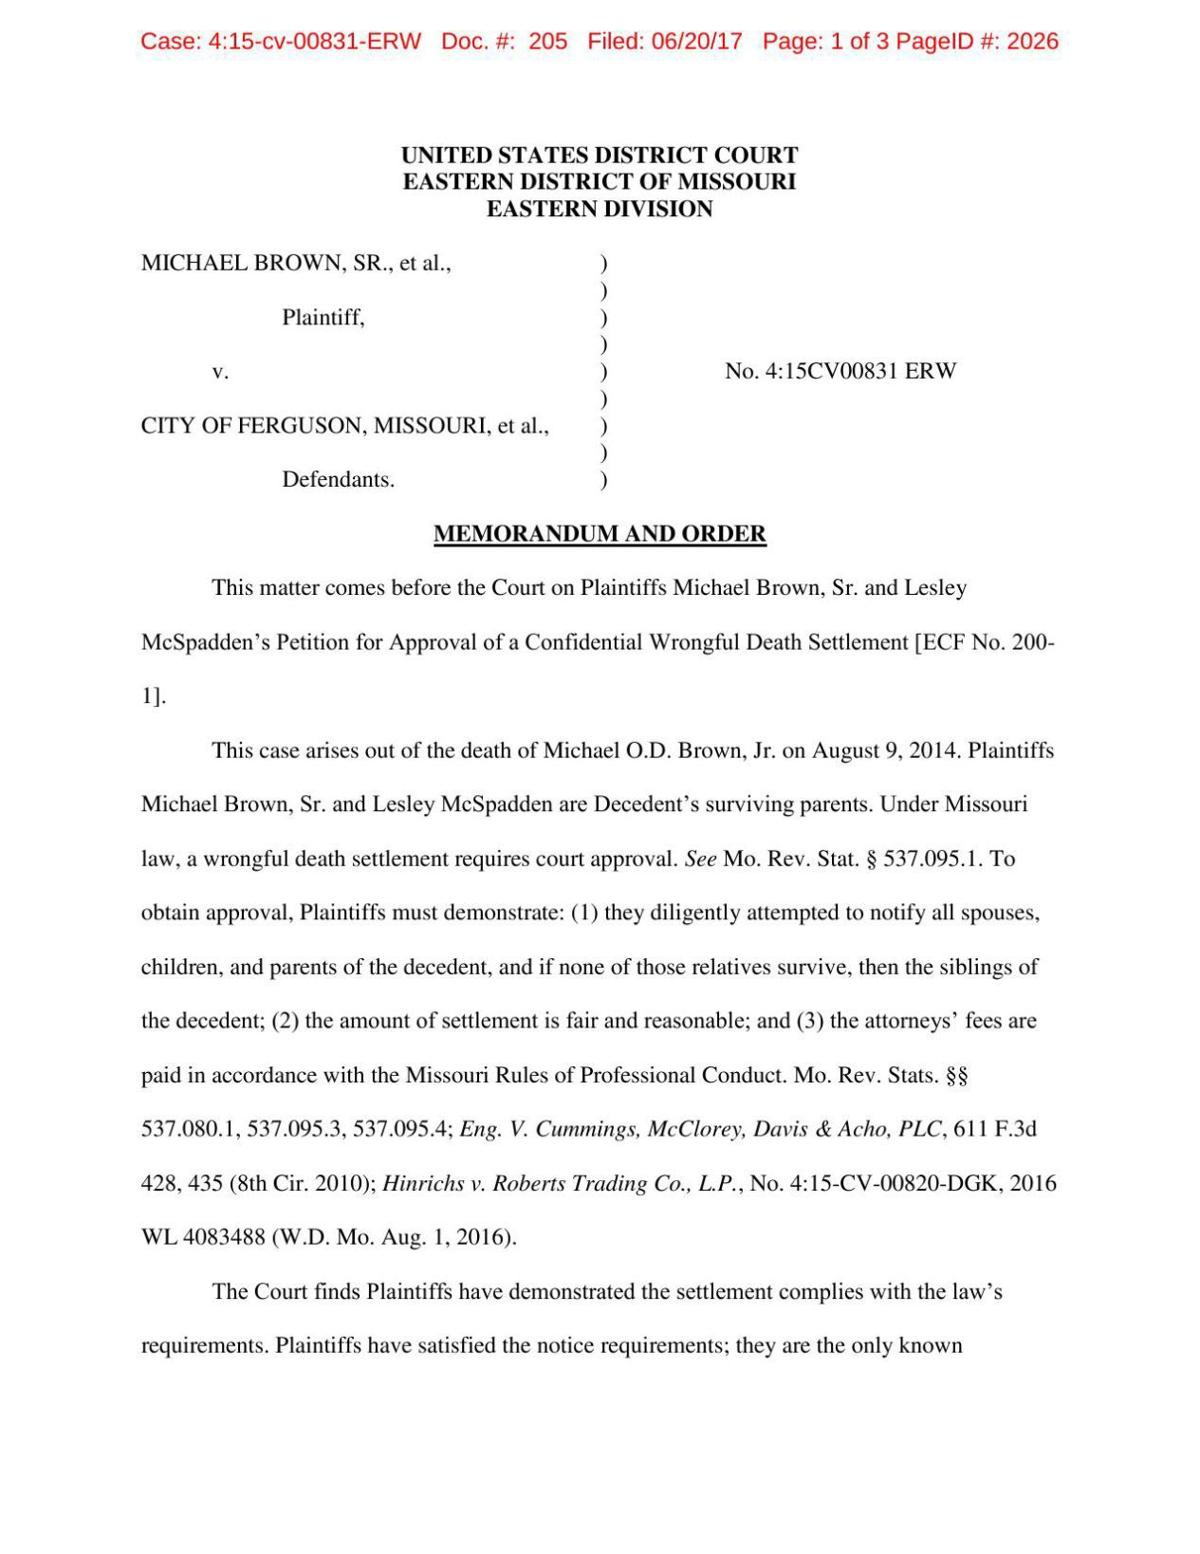 Michael Brown settlement approval